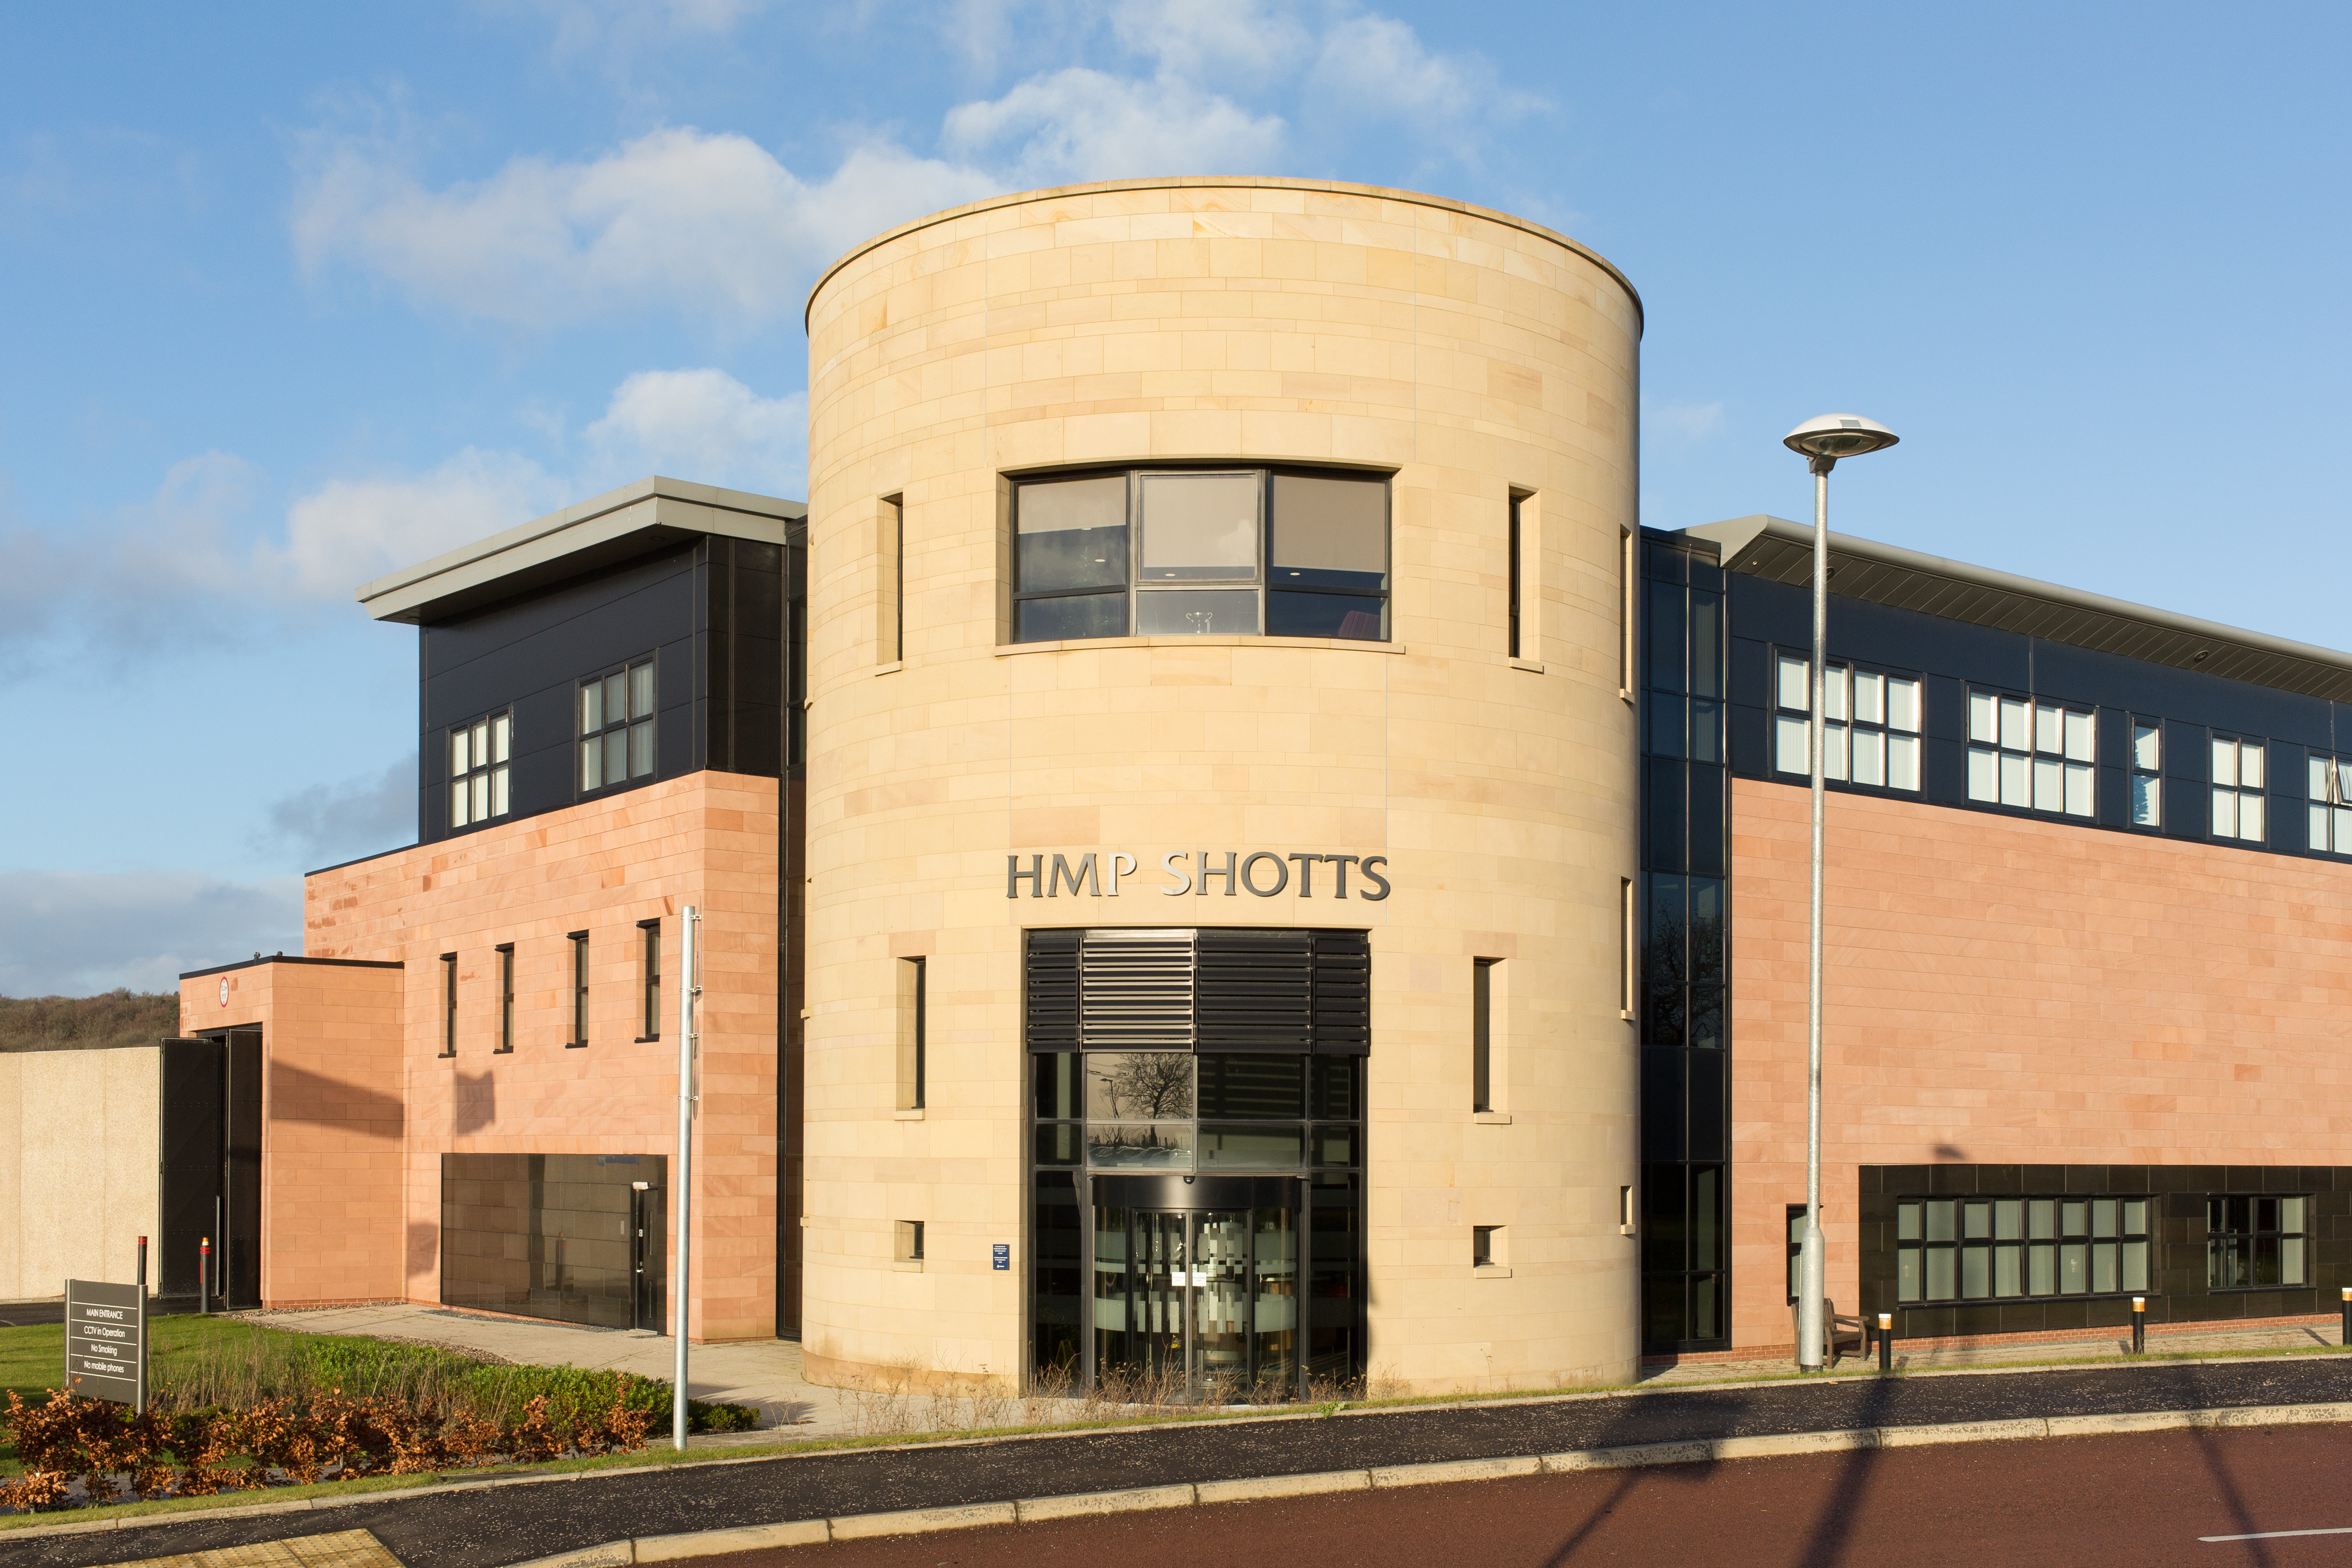 Please note that on Wednesday the 6th of March HMP Shotts will not be able to receive incoming calls between 9:45am and 2:00pm. This is due to the upgrading of the telephone system. In any emergency contact can be made via this mobile number 07881357302.